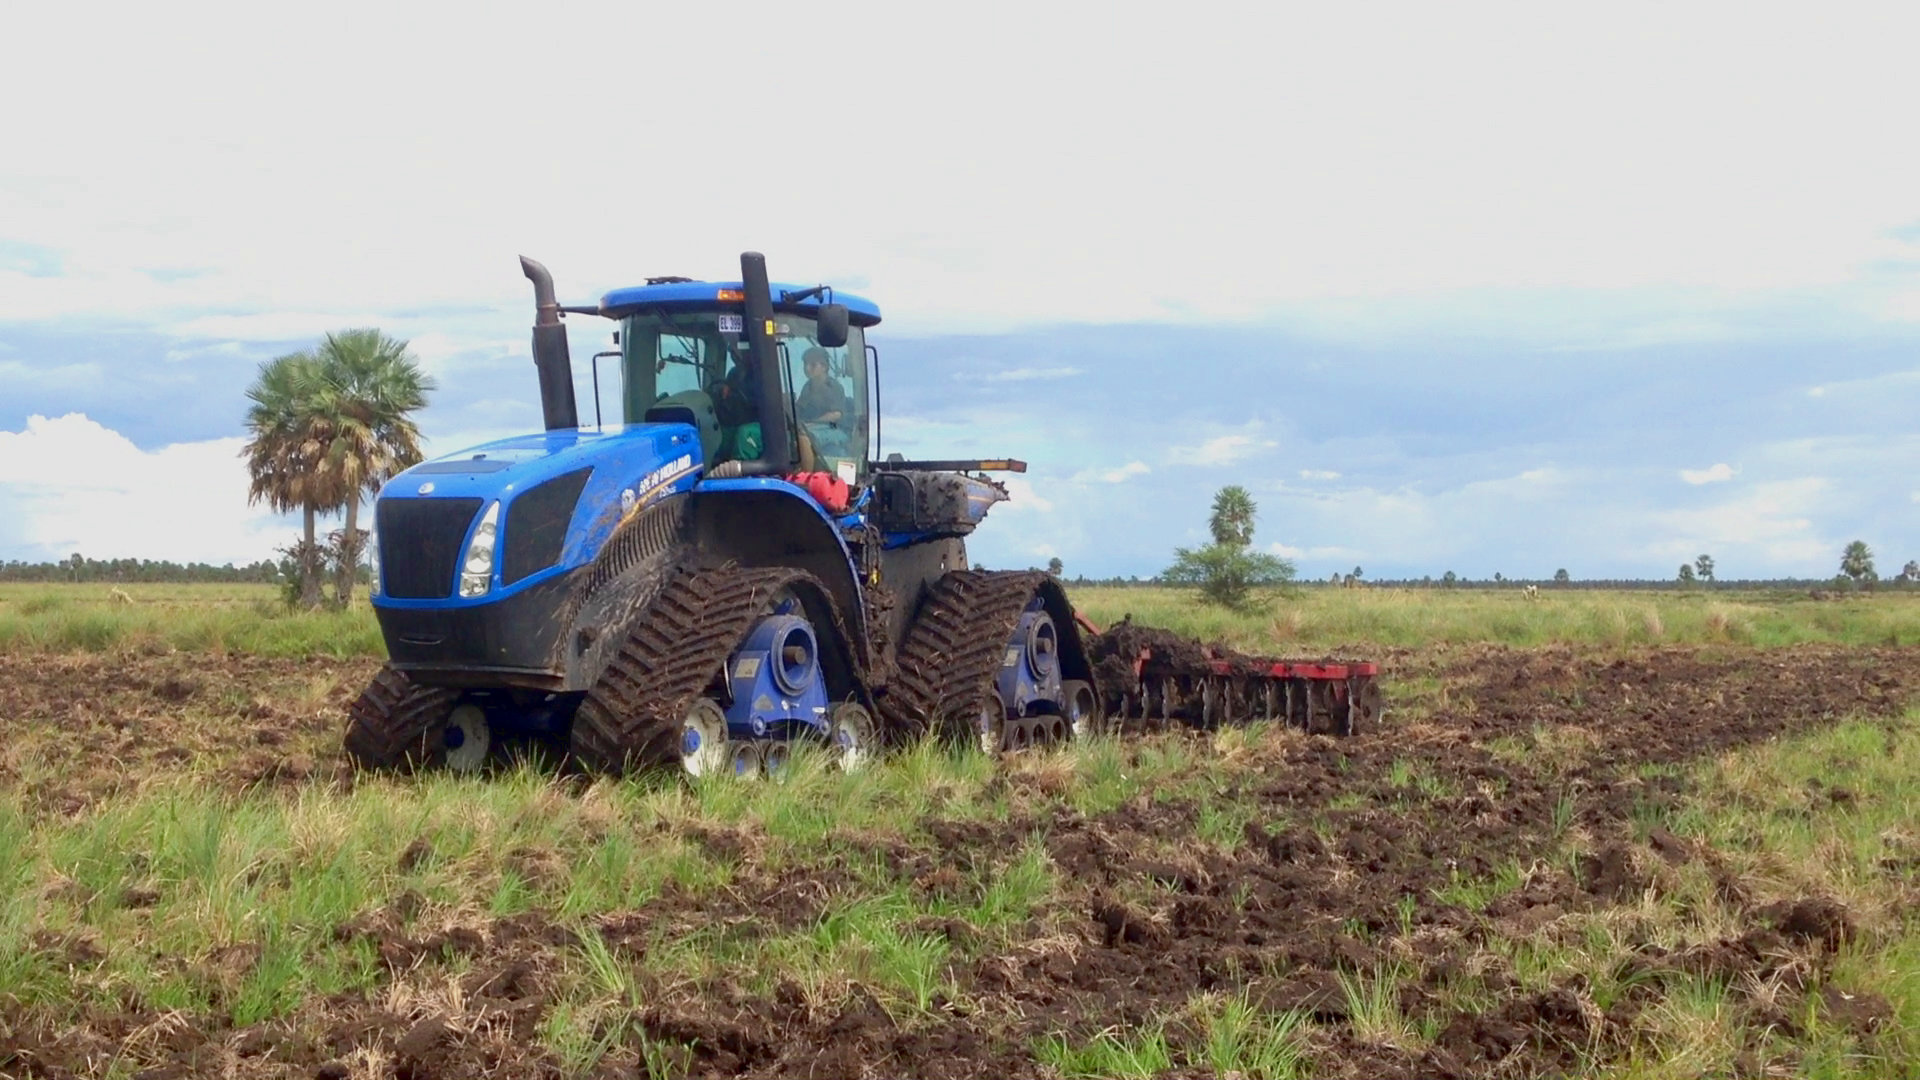 Poluzzi tracks working on NH T9 tractor in Paraguay